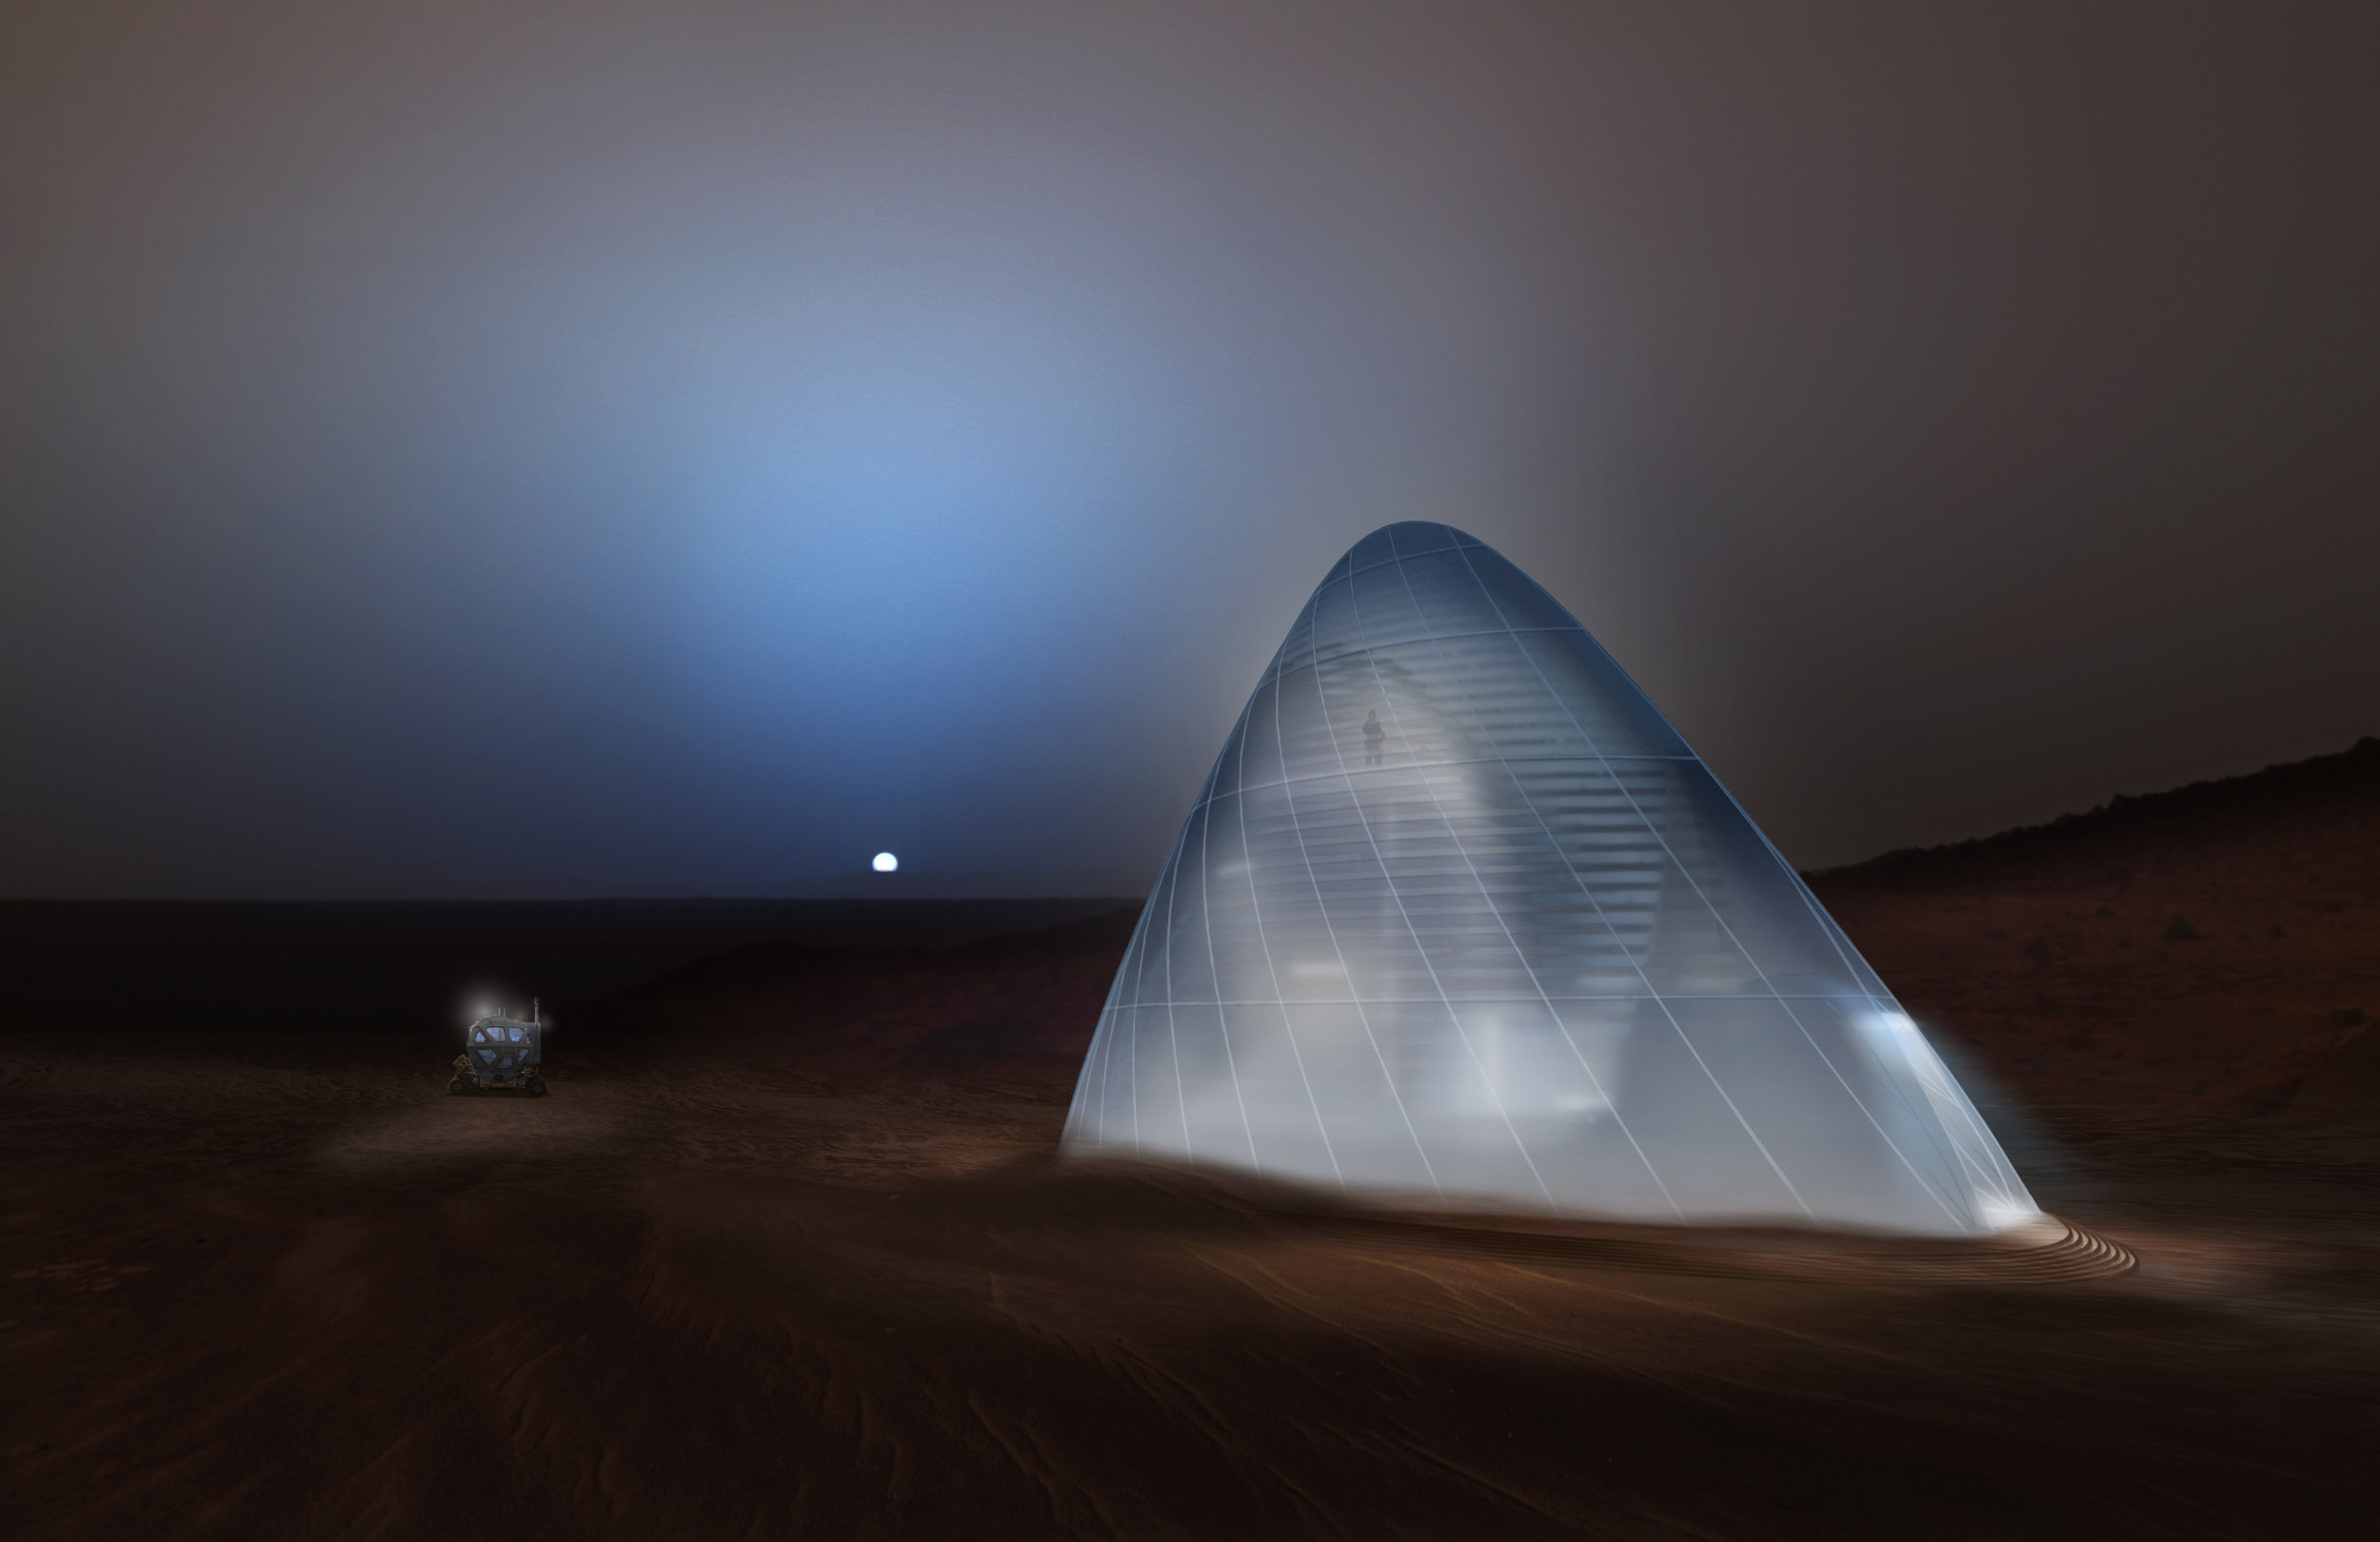 Mars Ice House. When taking the habitat from survivability to habitability, water is an indigenous resource which both protects from the radiation environment and offers human occupants a way to experience their new environment through a translucent membrane. Courtesy SEArch / CloudsAO